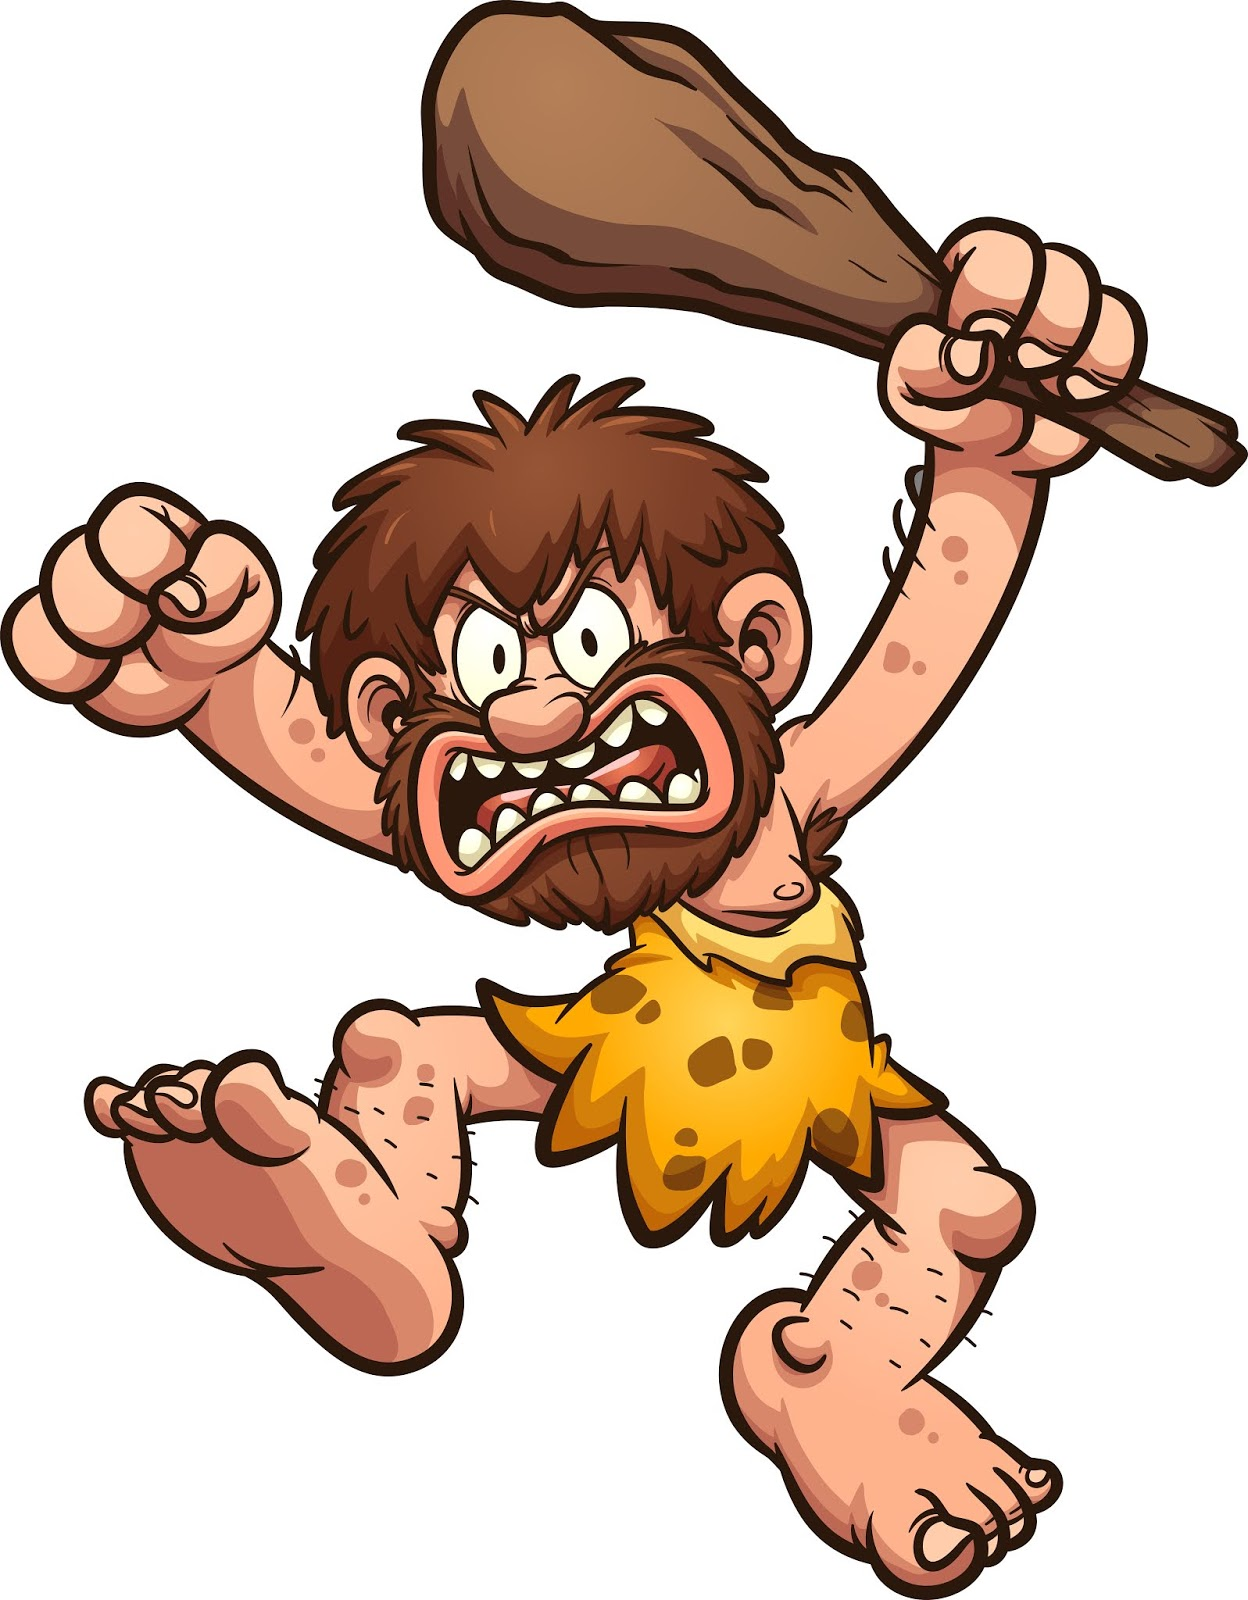 Angry Caveman Illustration Free Download Vector CDR, AI, EPS and PNG Formats